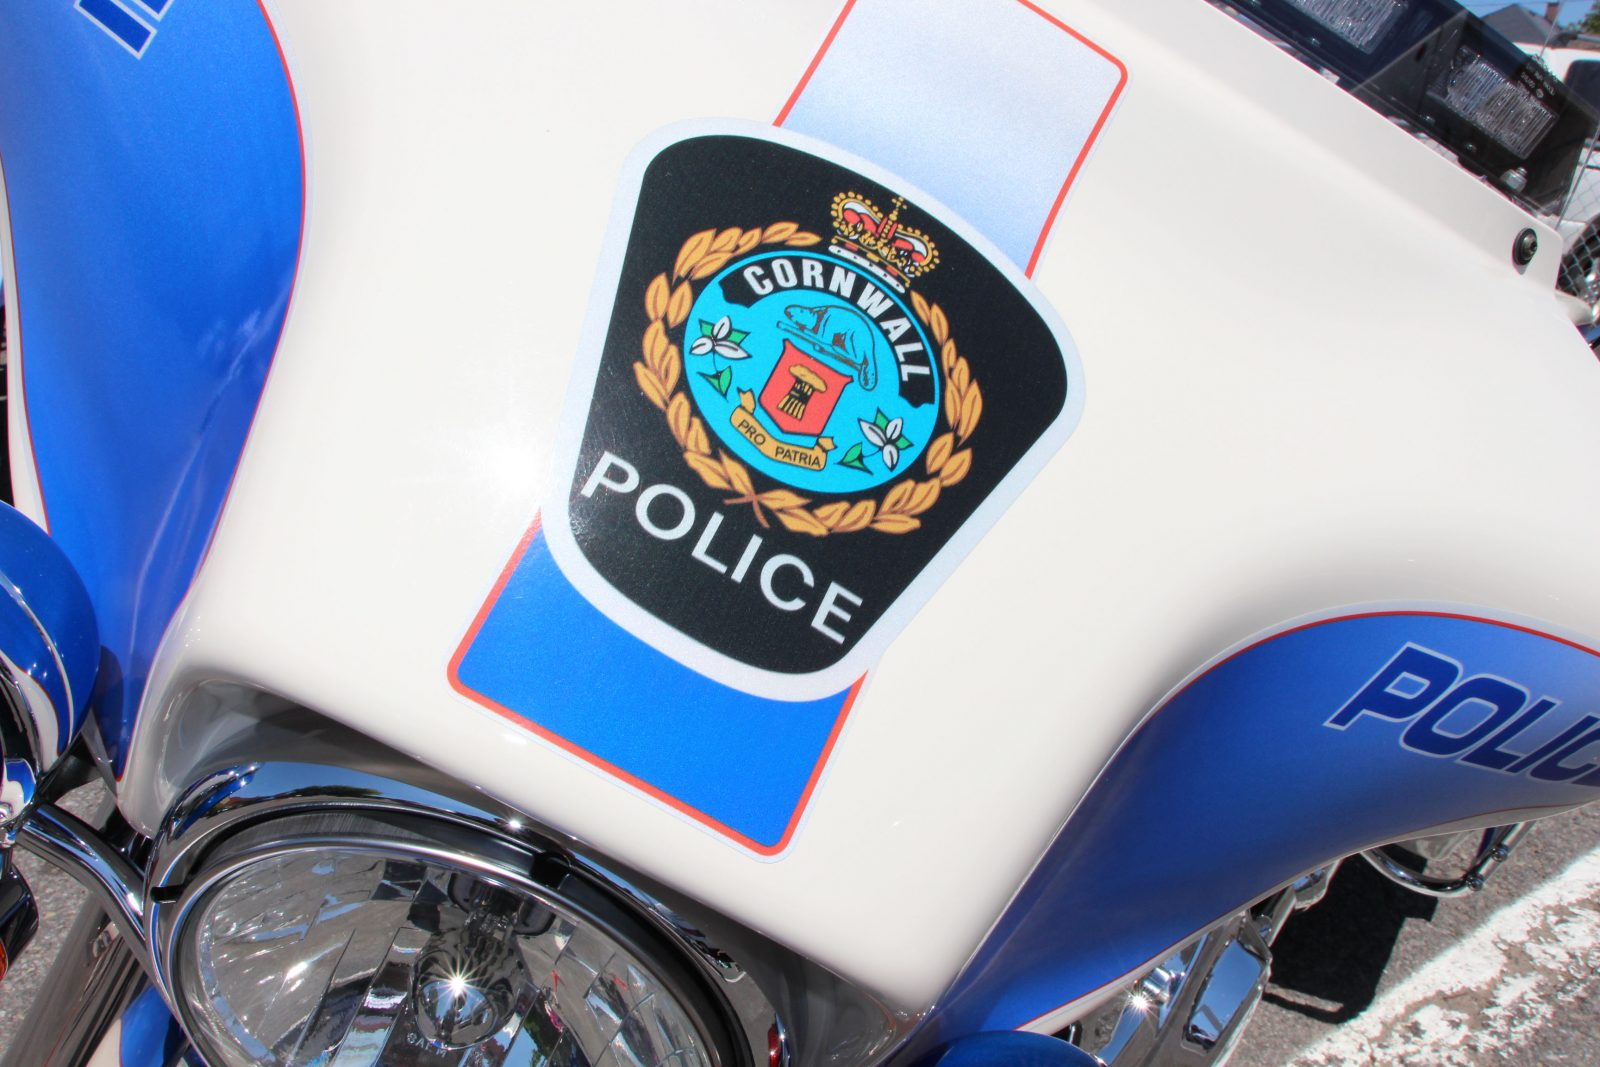 Cornwall man charged with assault with a laundry basket